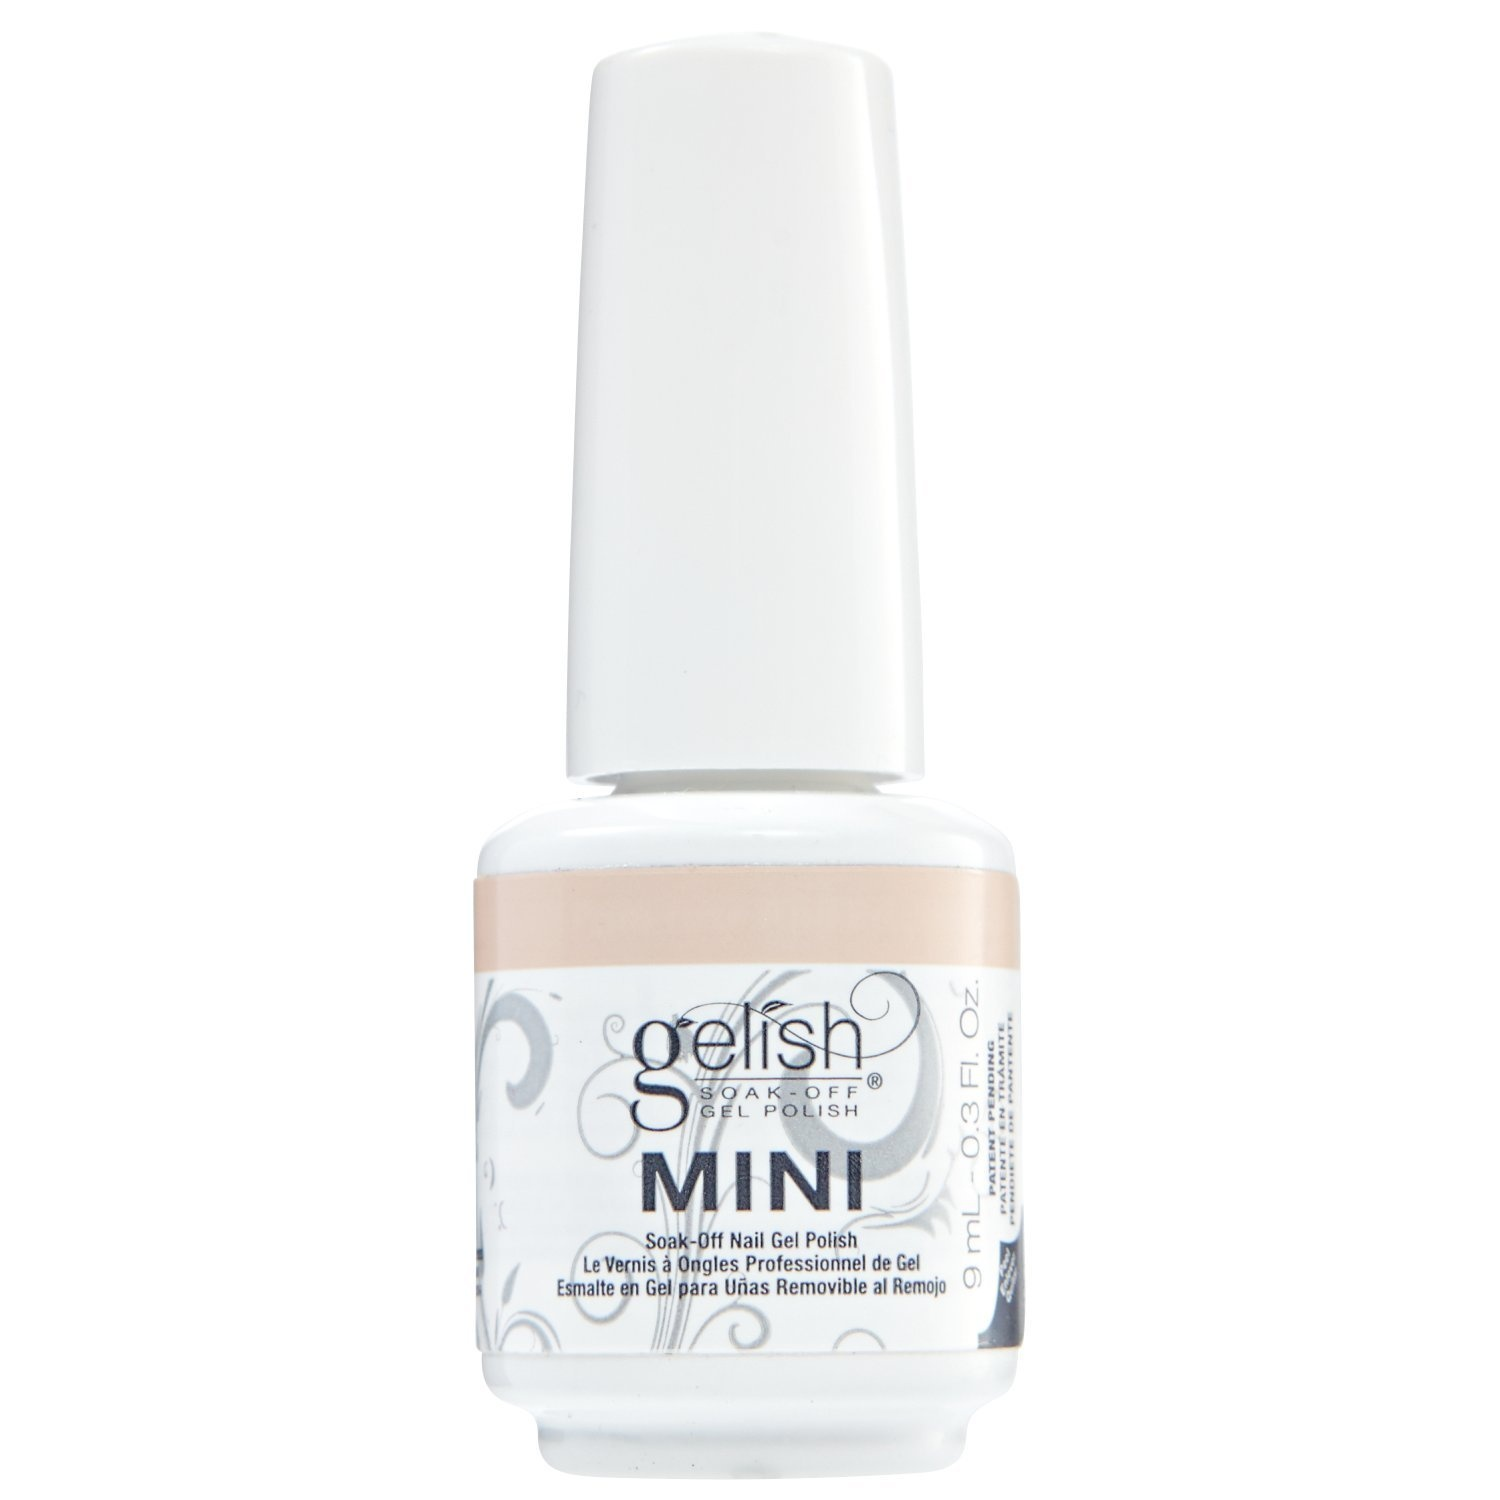 MINI Prim-Rose & Proper by Gelish - Shop Online for Beauty in New ...